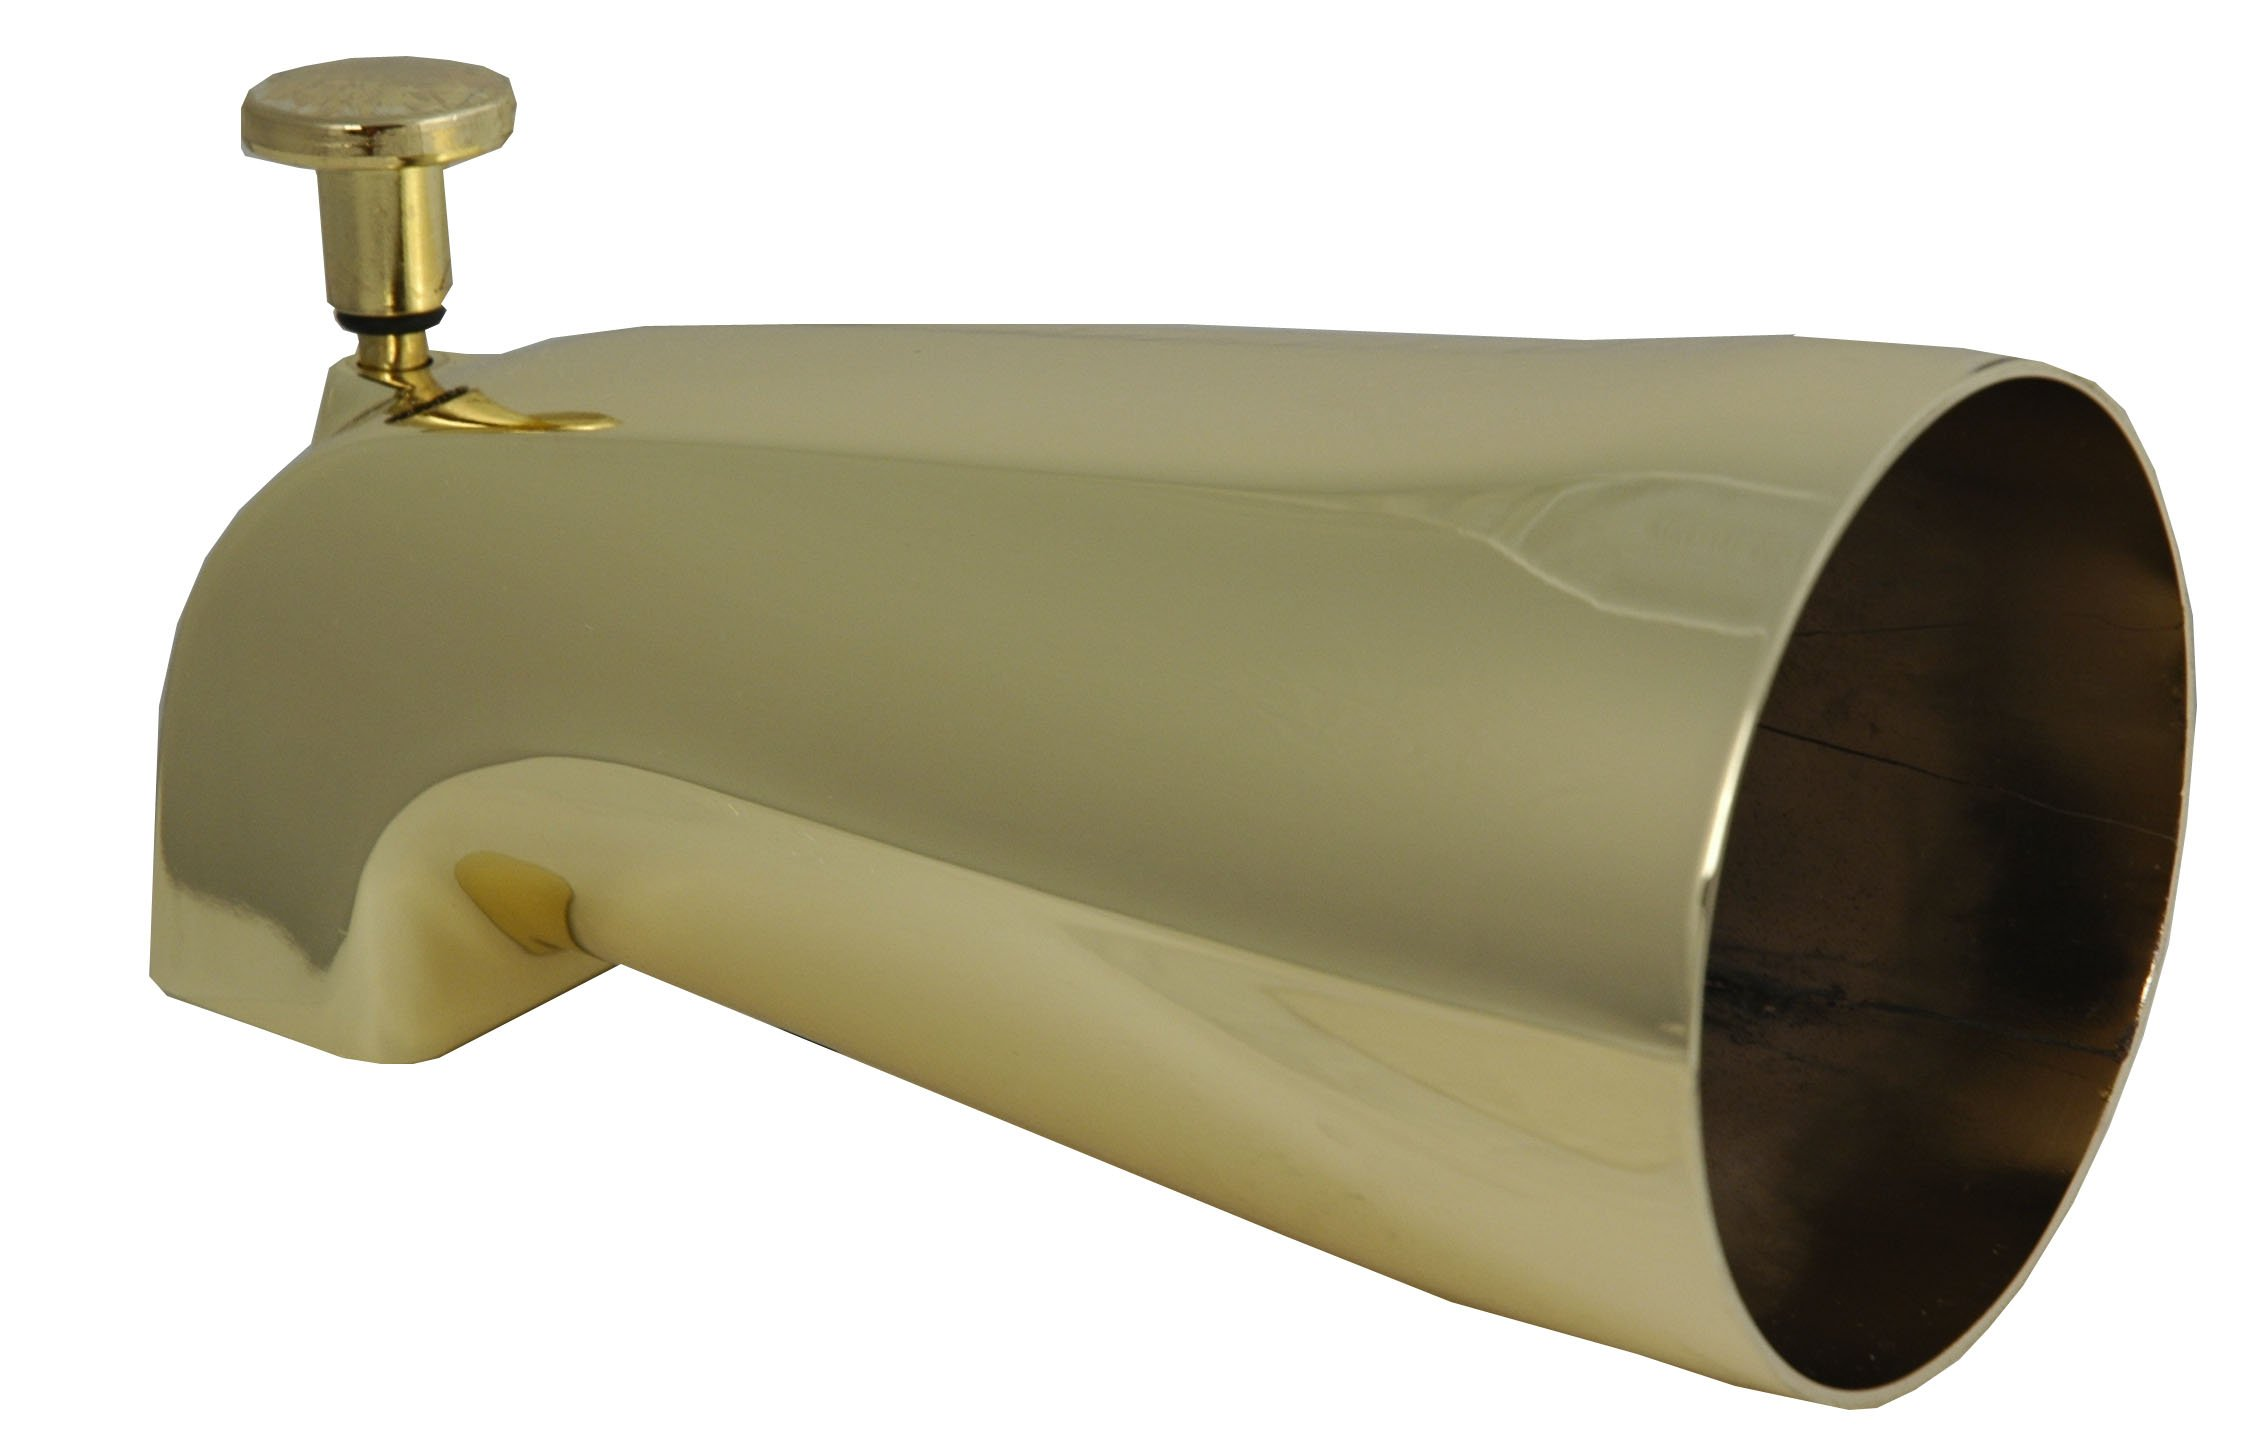 Diverter Spout, Polished Brass PVD (No-Fading) Finish, By Plumb USA